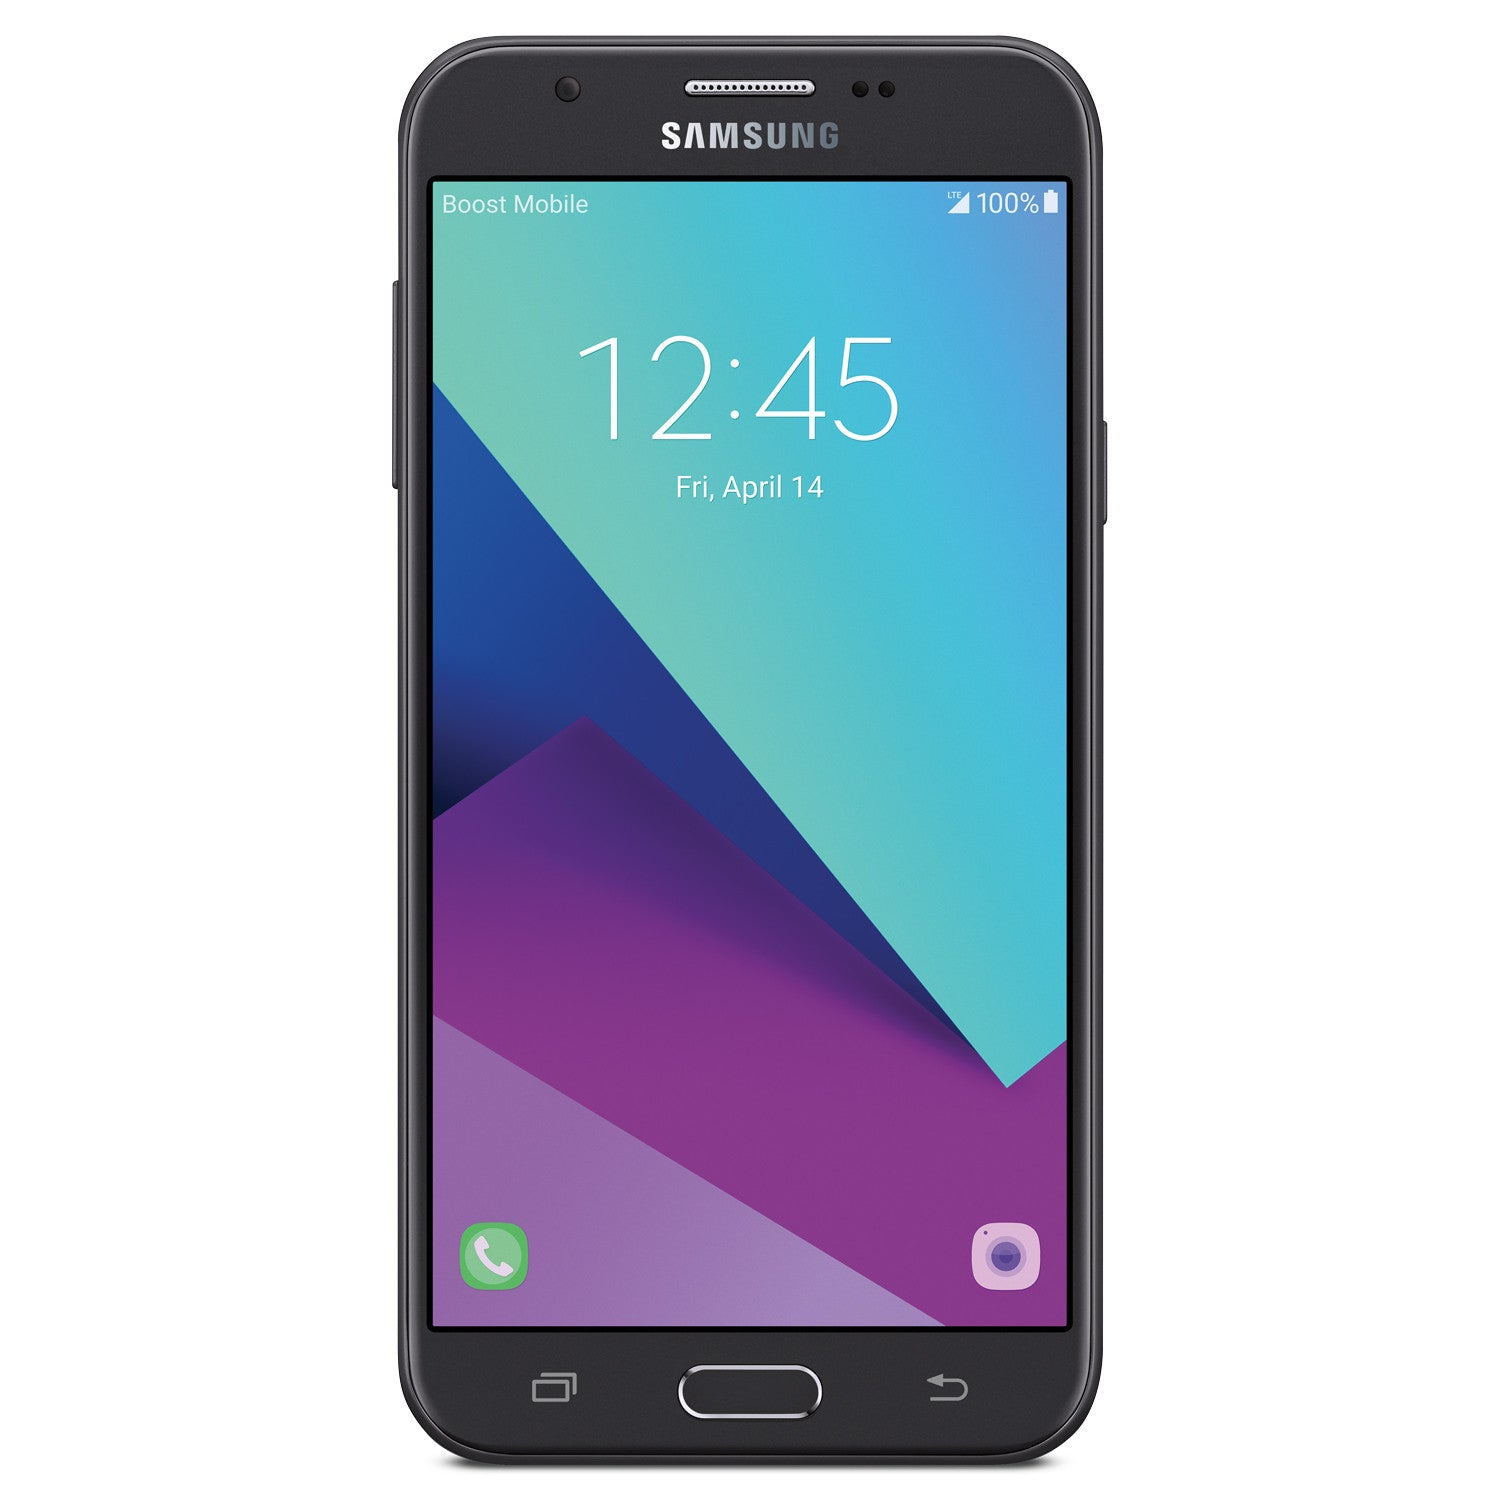 "Samsung Galaxy J7 Perx LTE 5.5"" for Boost Mobile"